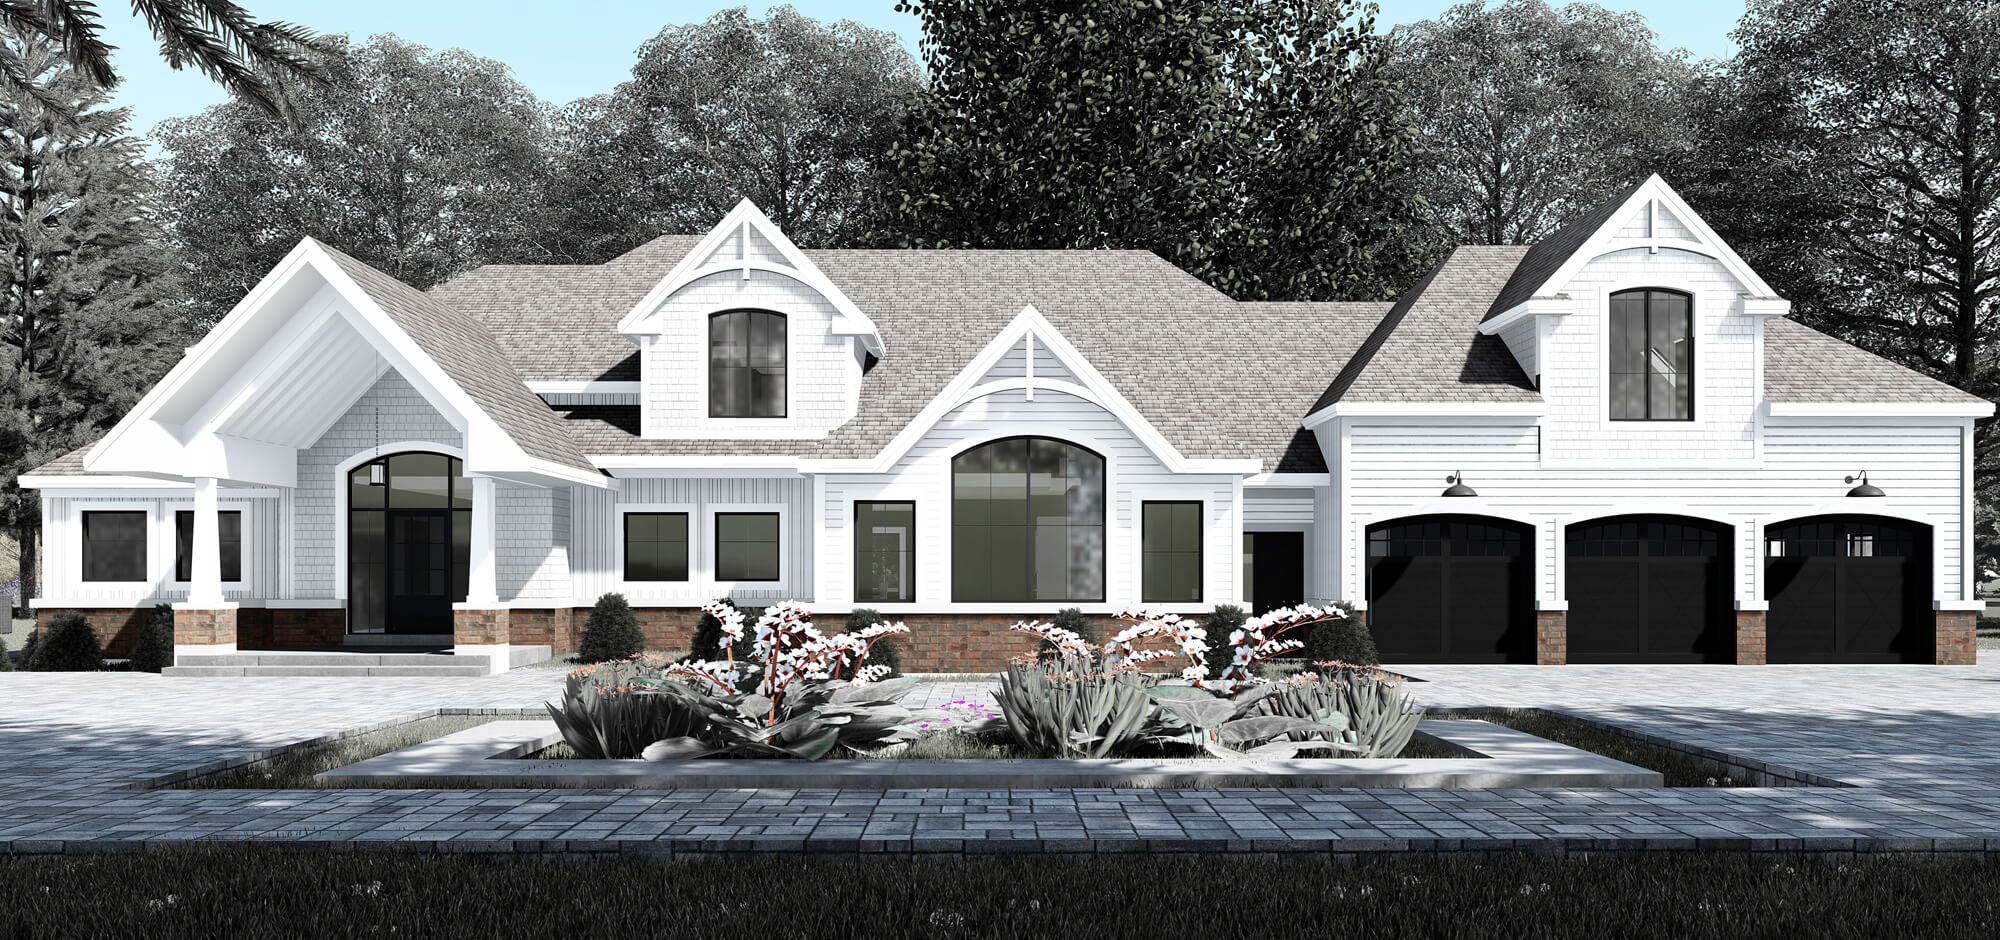 Residential Architecture Rendering